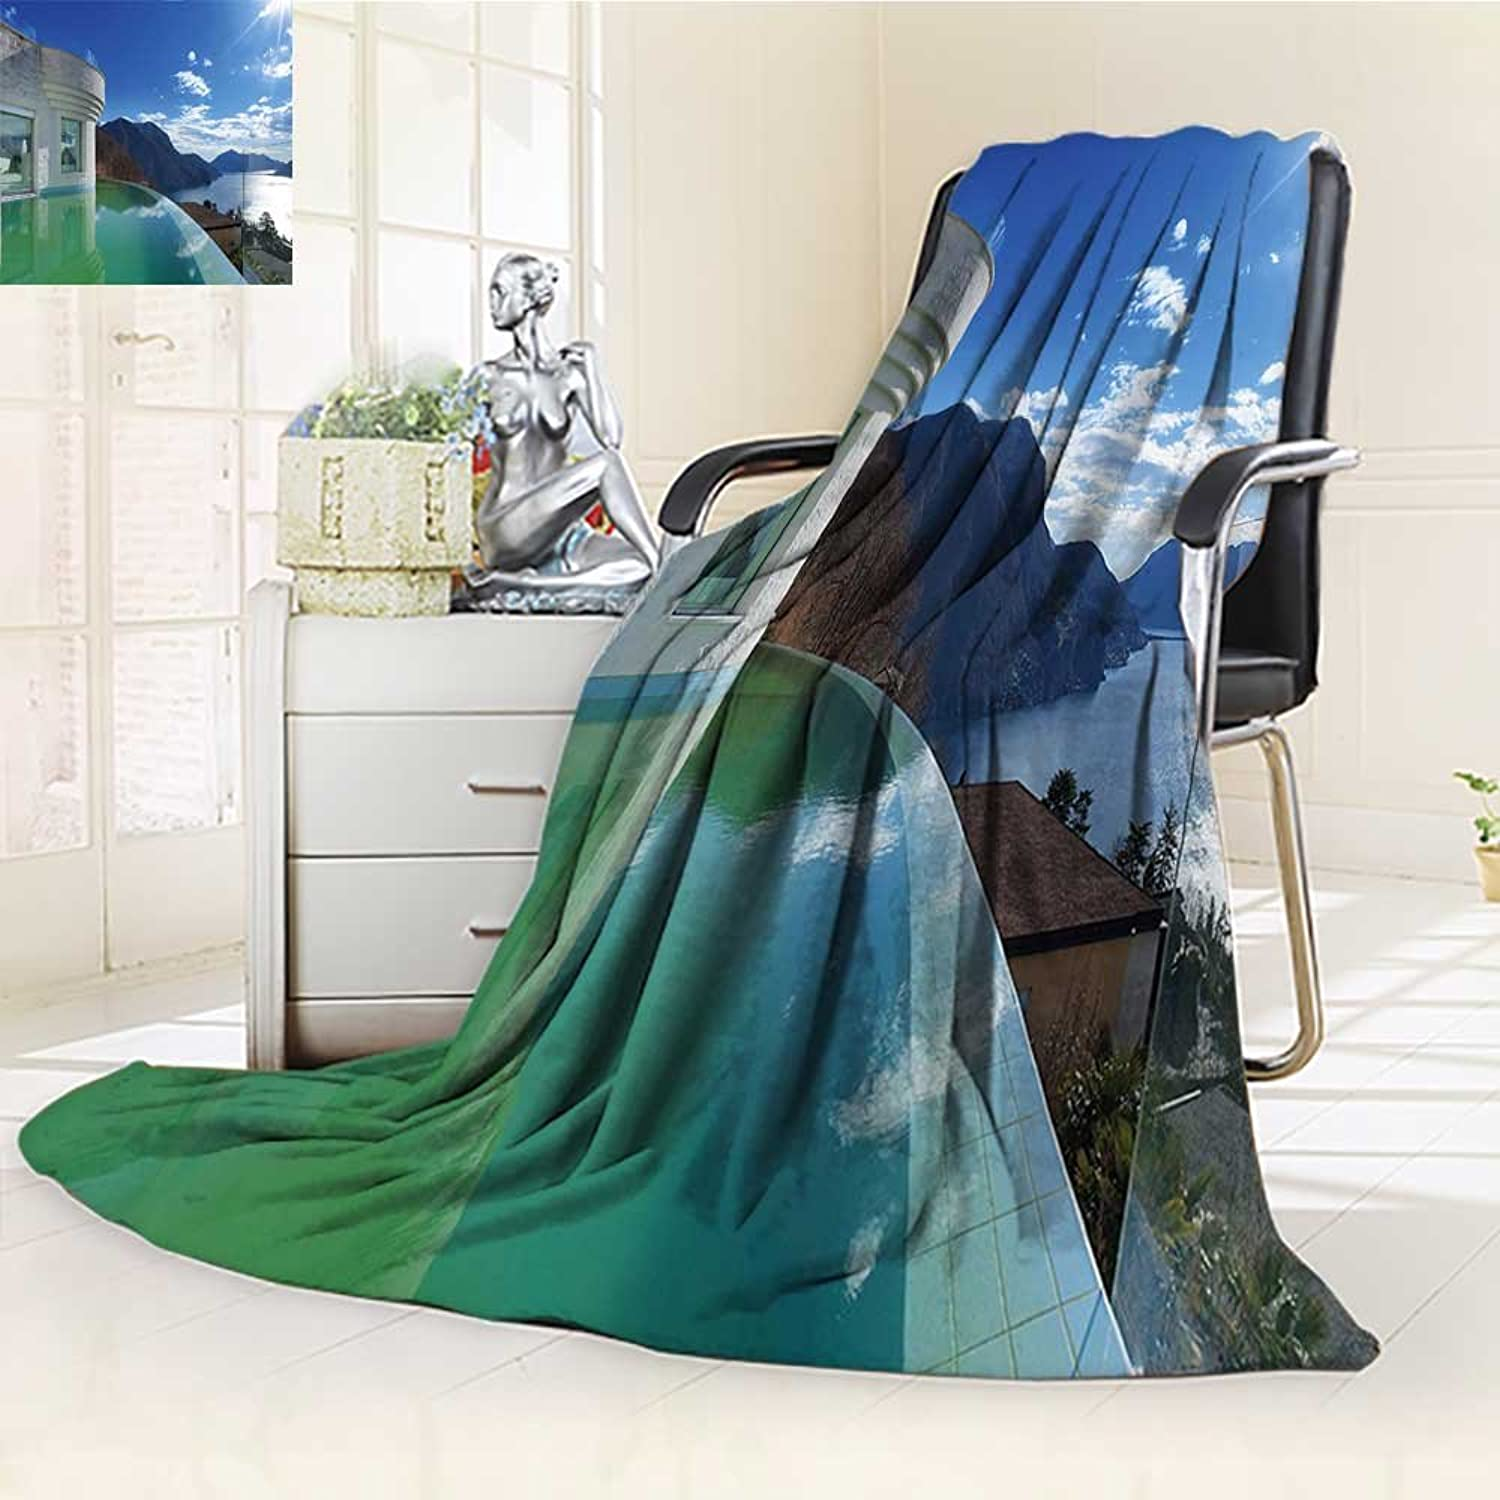 YOYI-HOME Digital Printing Duplex Printed Blanket Travel Modern Penthouse with Infinity Pool Summer Holiday Themed Image White and Light bluee Summer Quilt Comforter  W59 x H39.5